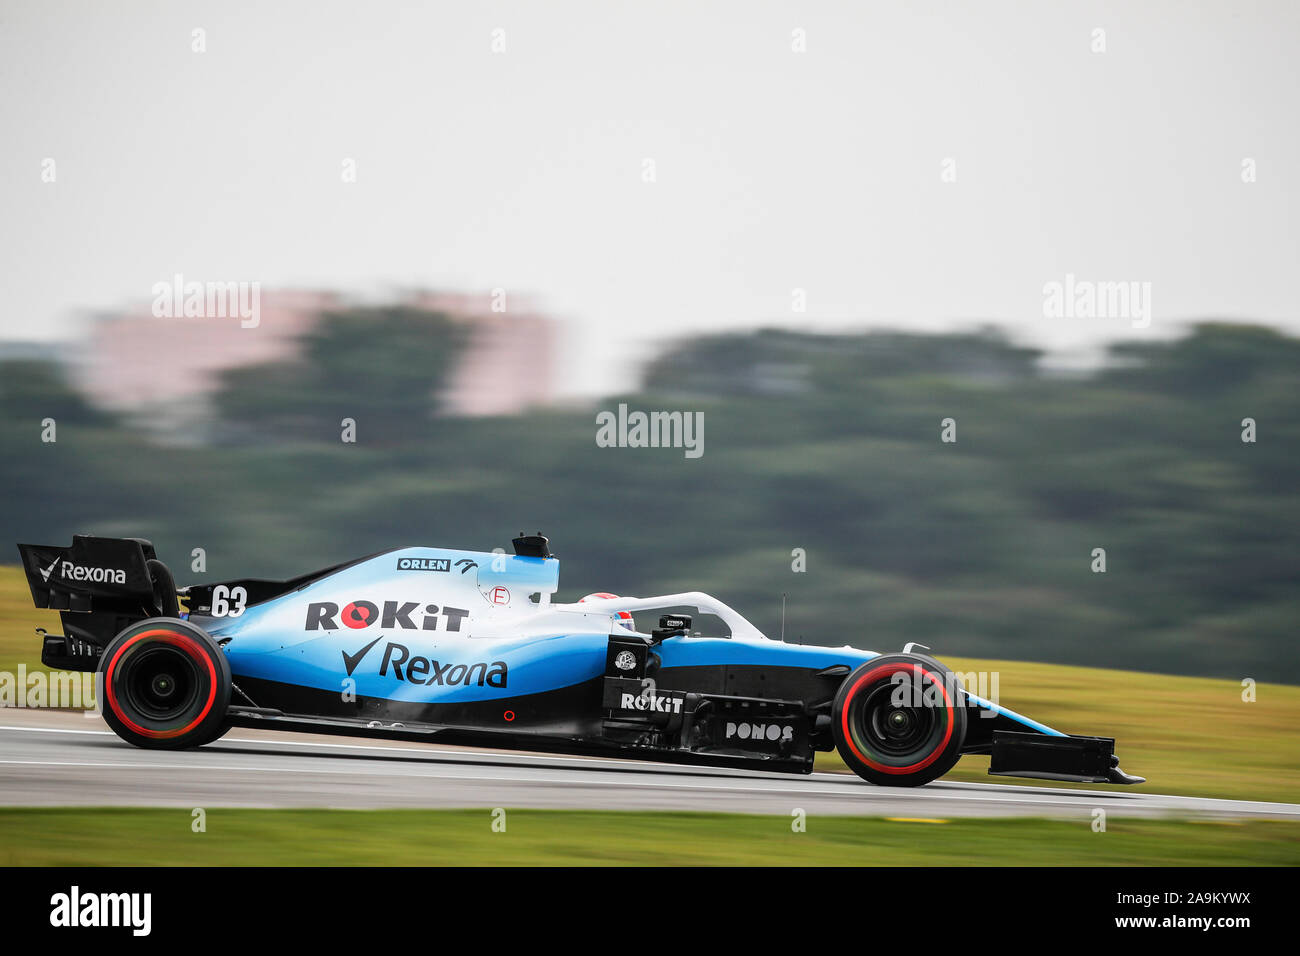 Sao Paulo, Brazil. 15th Nov, 2019. 63 RUSSELL George (gbr), Williams Racing F1 FW42, action during the 2019 Formula One World Championship, Brazil Grand Prix from November 15 to 17 in Sao Paulo, Brazil - | usage worldwide Credit: dpa/Alamy Live News - Stock Photo